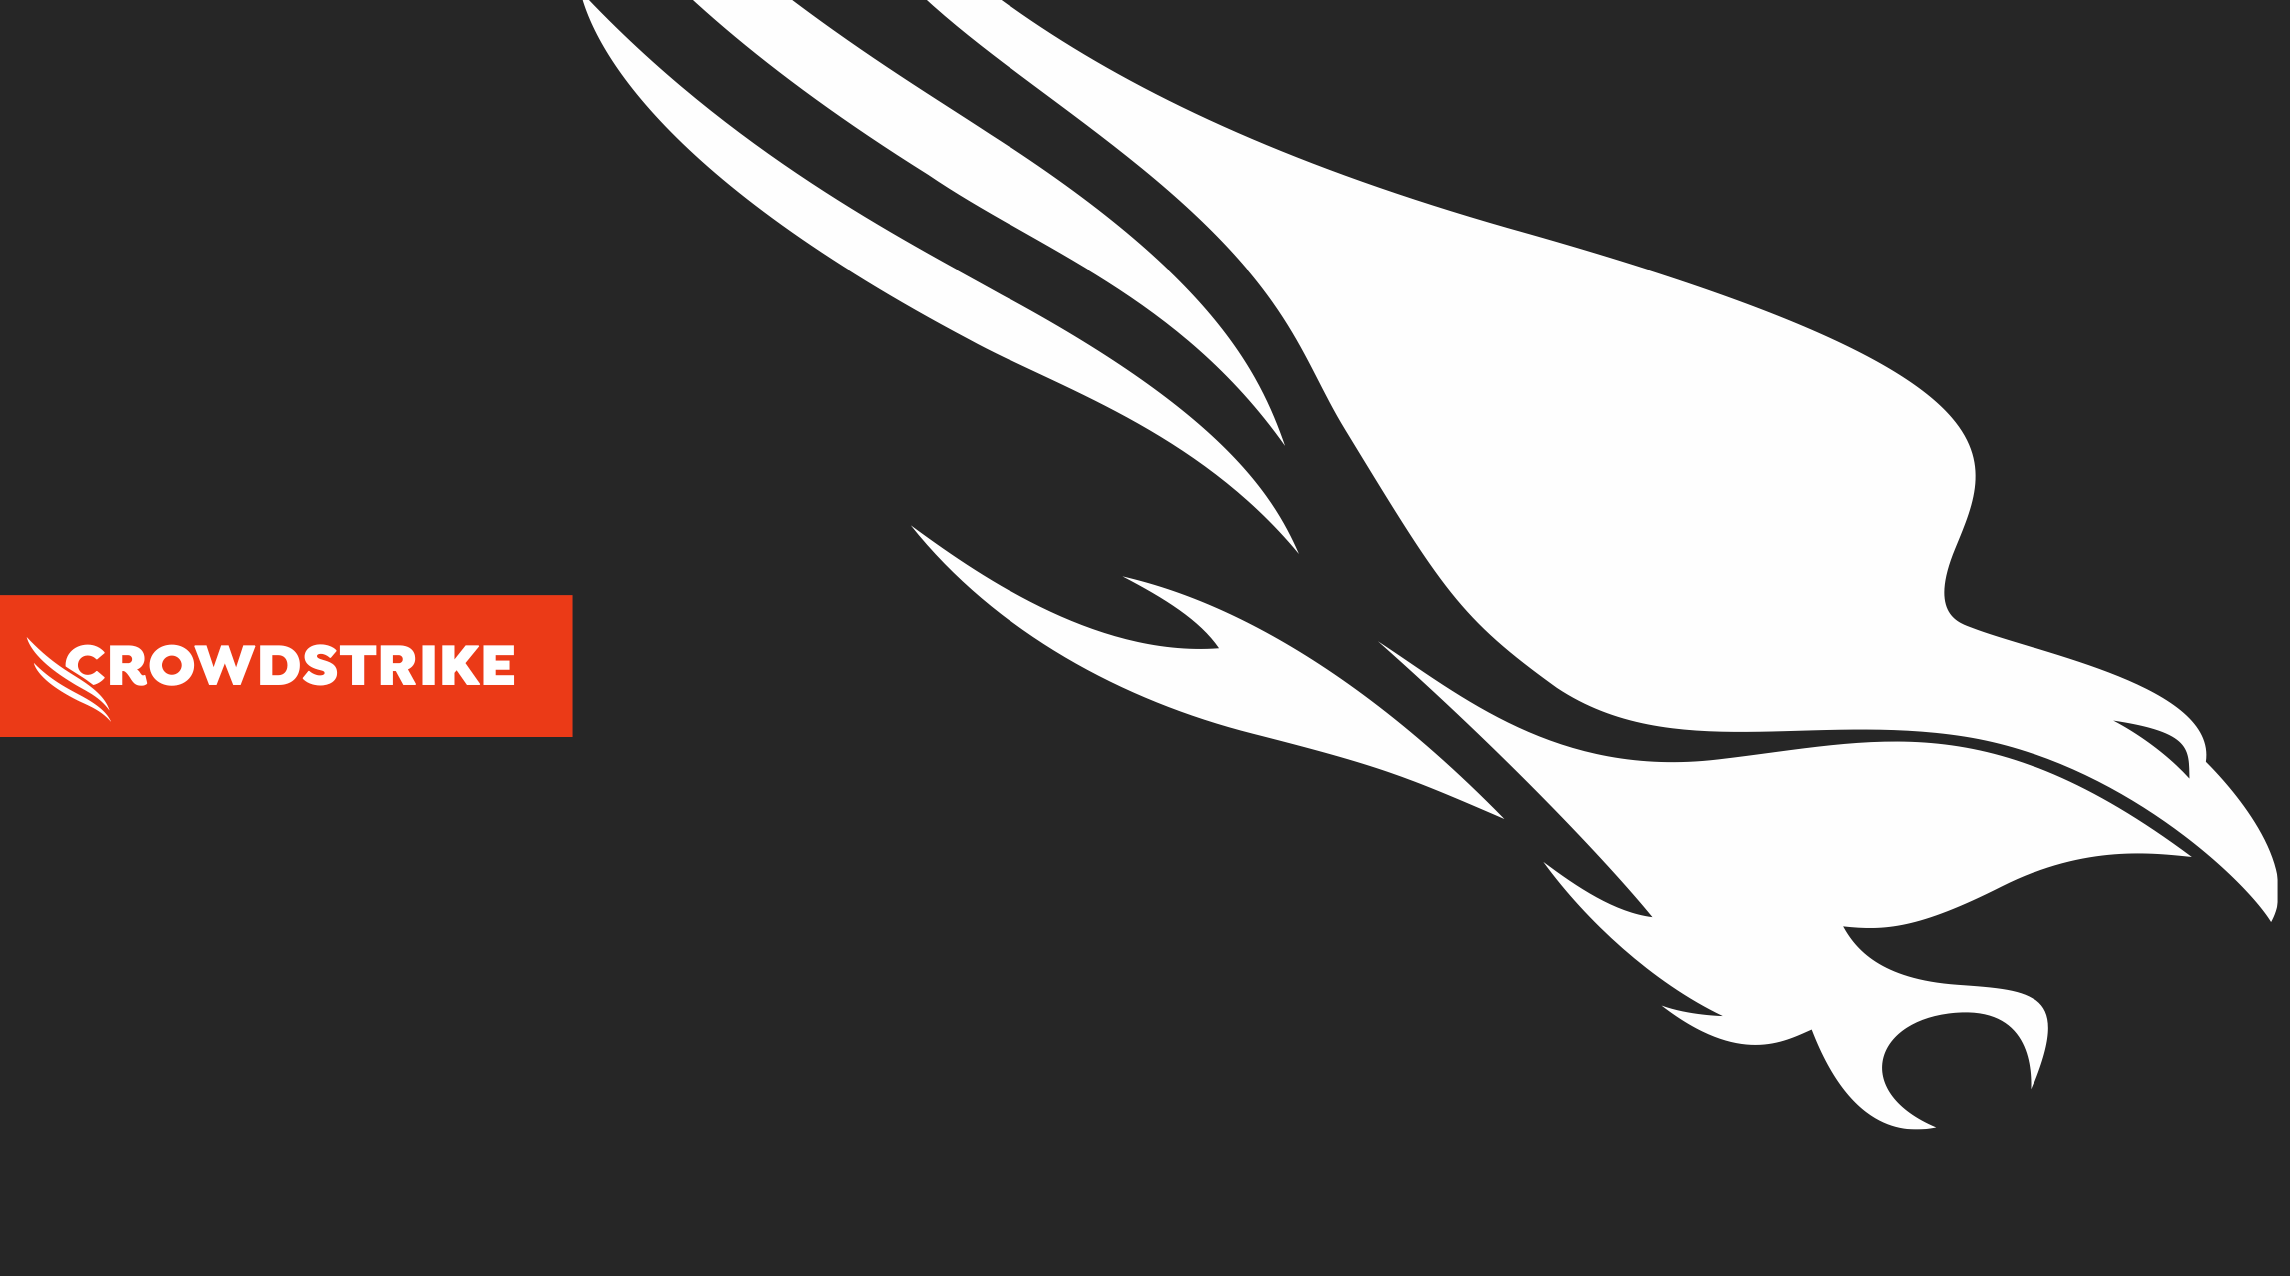 You are currently viewing CrowdStrike:21 世紀的曙光?